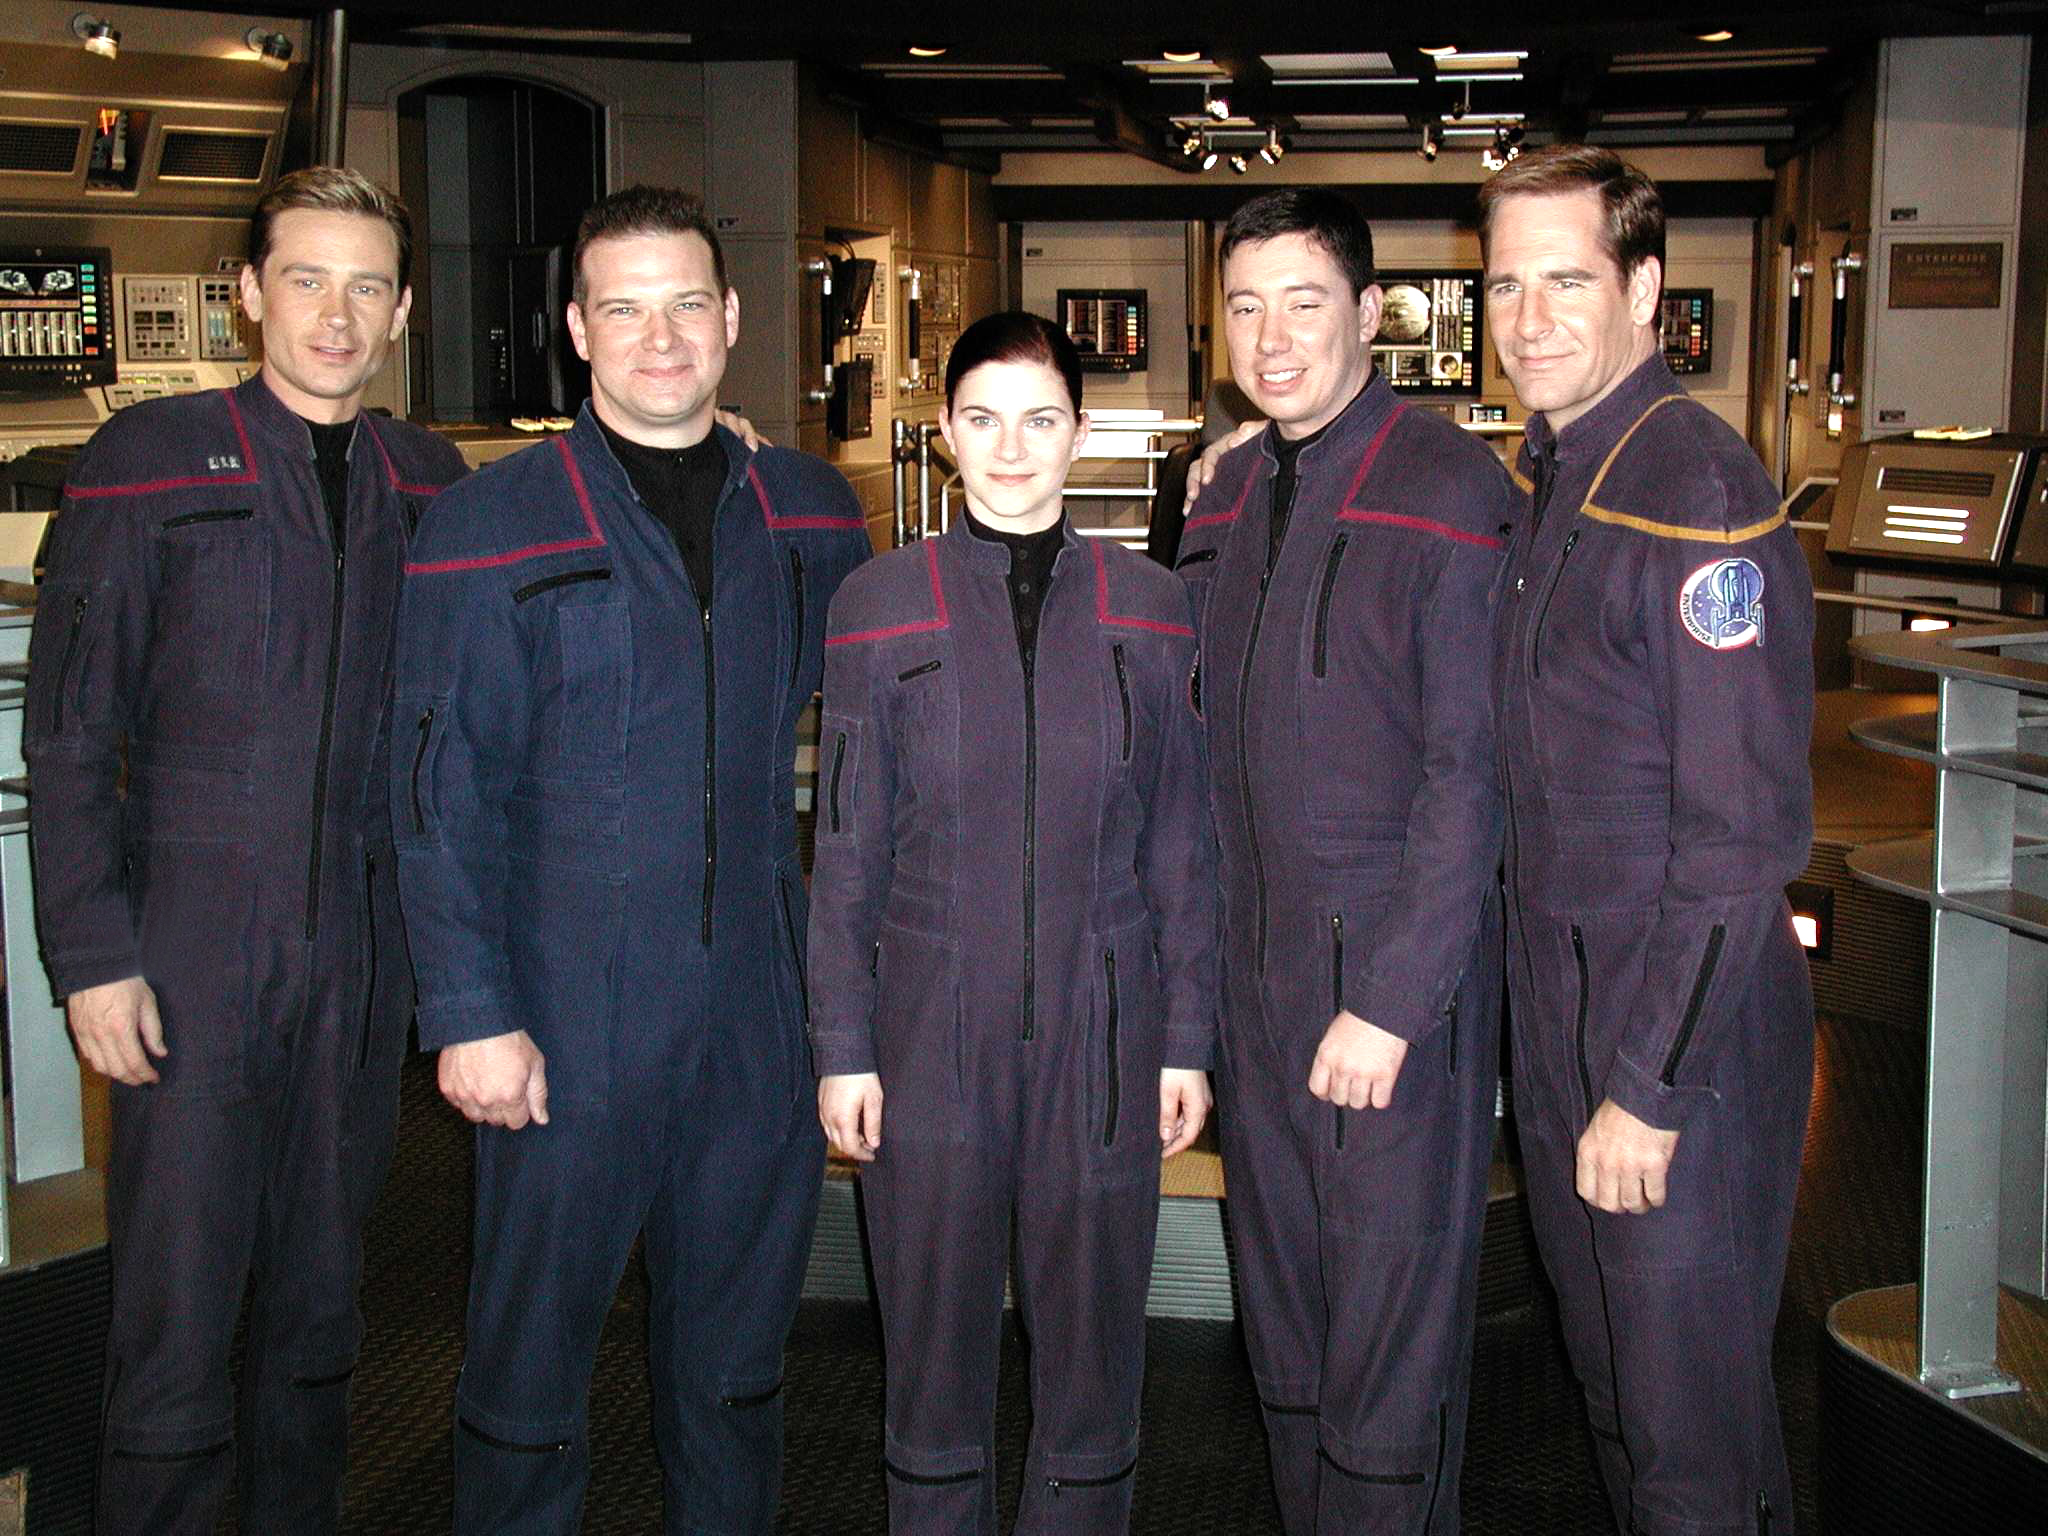 "Sailors of the Year for the year 2001 meet cast members of the 'Star Trek' television series entitled ""Enterprise."" Pictured here on the set of the series are (from left) Conner Trinneer, who plays Chief Engineer Charles ""Trip"" Tucker, III; Aviation Electronics Technician 1st Class Robert S. Pickering, Sailor of the Year; Personnelman 3rd Class Sarah E. Pizzo, Blue Jacket of the Year; Aviation Electrician's Mate 2nd Class Timothy J. Whittington, Junior Sailor of the Year; and Scott Bakula, who plays Capt. Jonathan Archer. The three Sailors were given the opportunity to appear in a scene during an episode which aired recently."